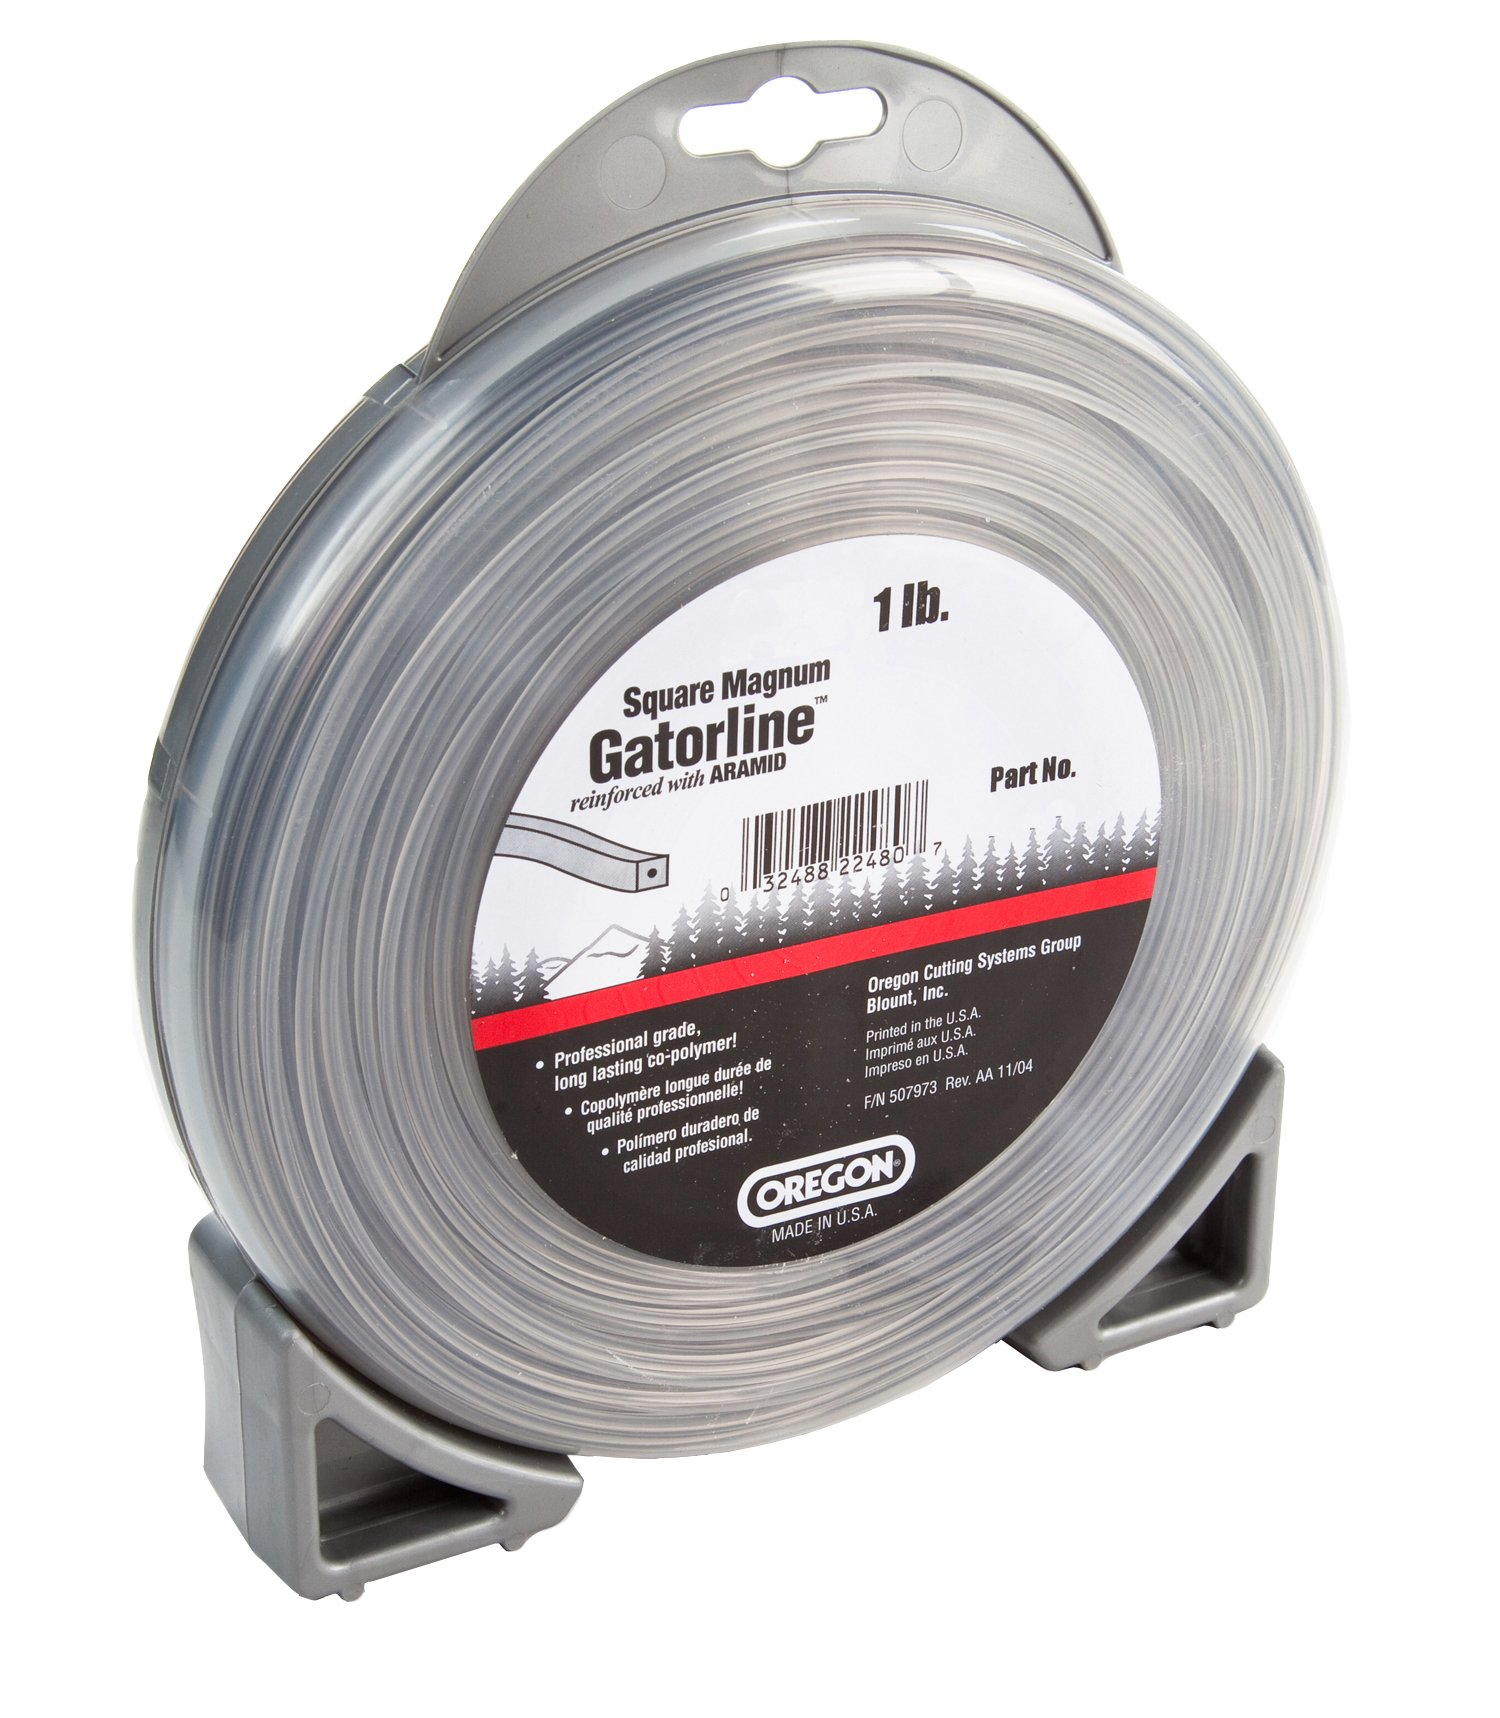 Oregon 22-495 Gatorline Heavy-Duty Professional Magnum 1-Pound Coil of .095-Inch vy 226-Foot Square-Shaped String Trimmer Line by Oregon